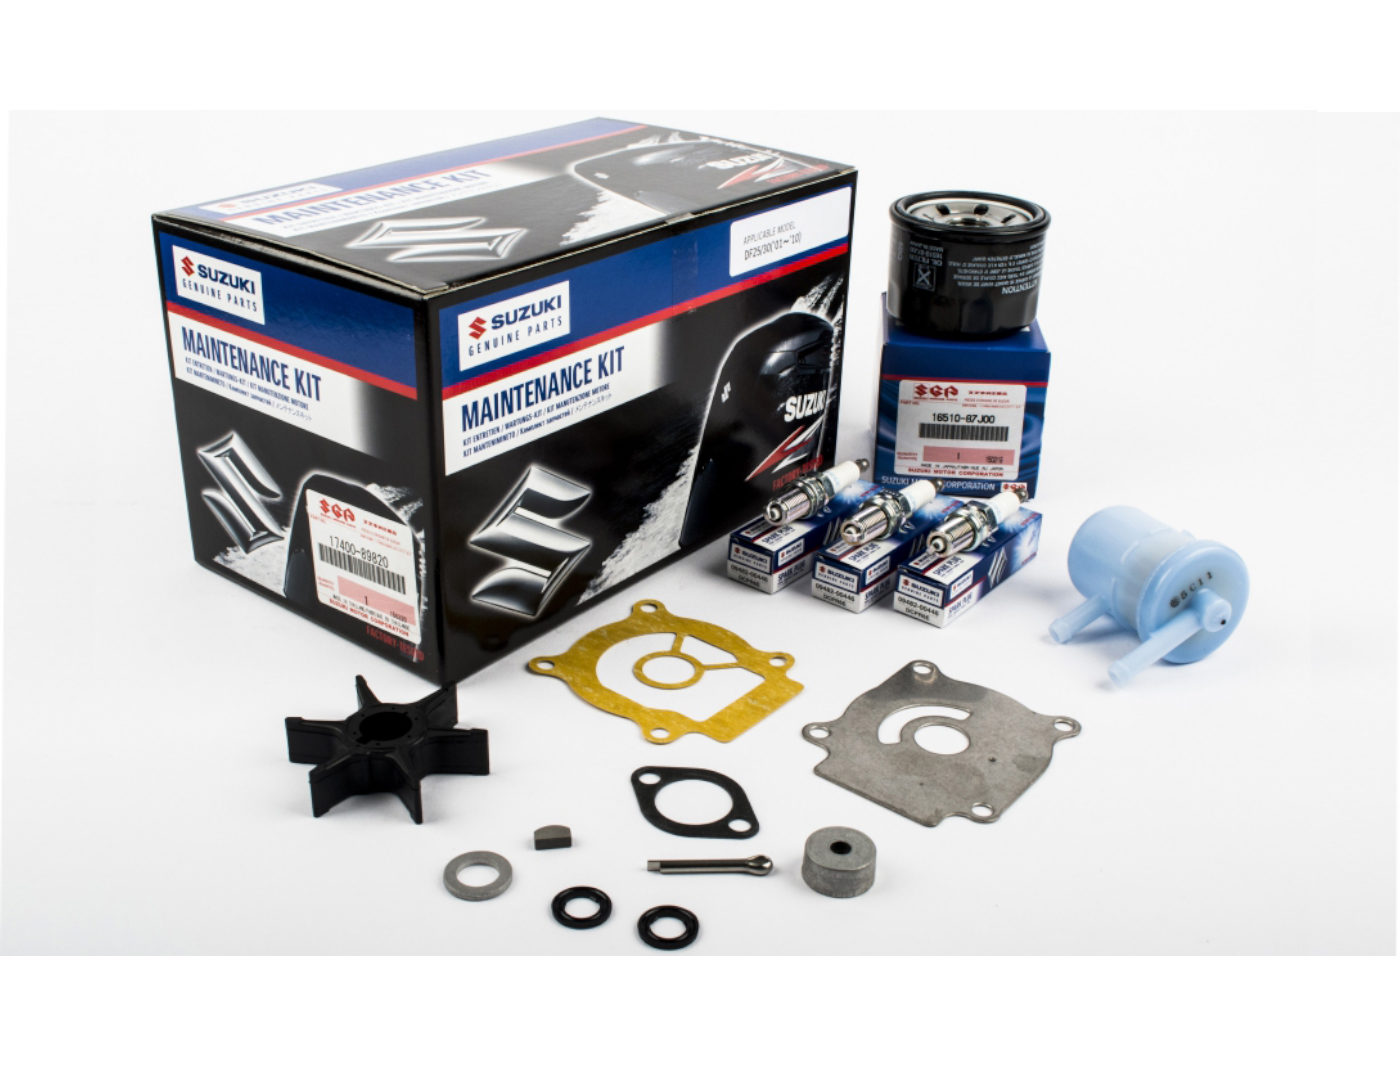 Suzuki DF25/30 Marine Maintenance Service Kit ('01-'10)